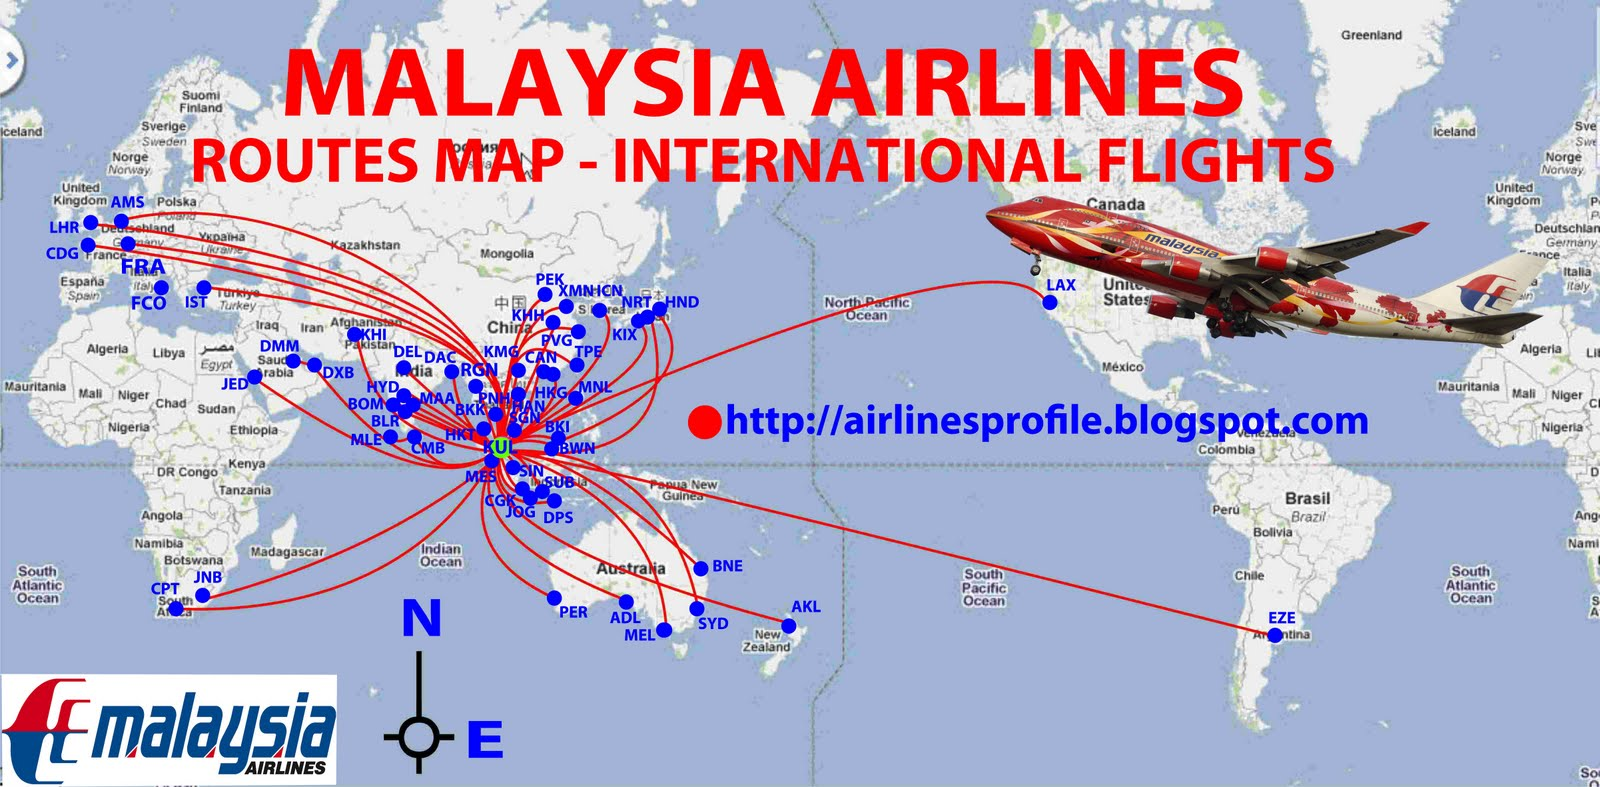 you can share information or impression during flight with malaysia airlines to us at this forum malaysia airlines routes map